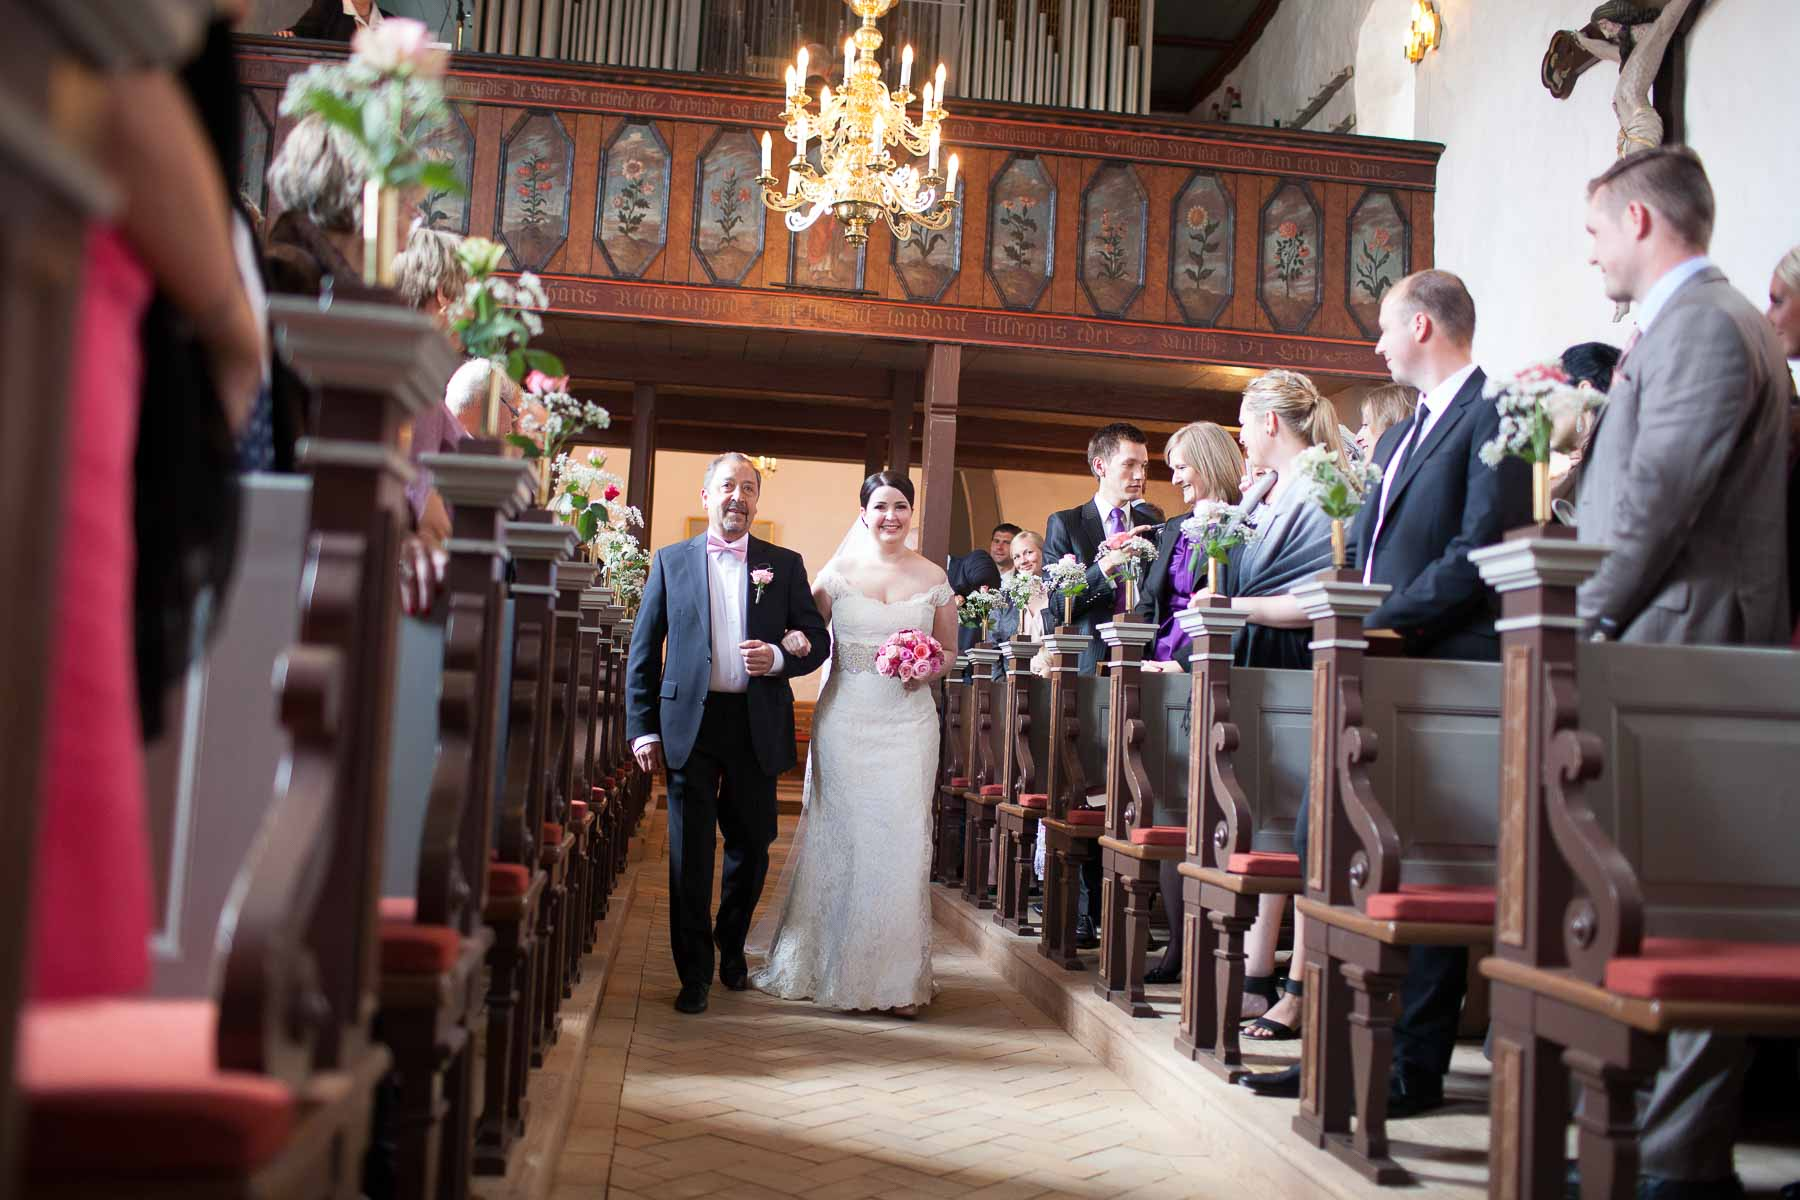 Knowing some of the successful wedding planning tips